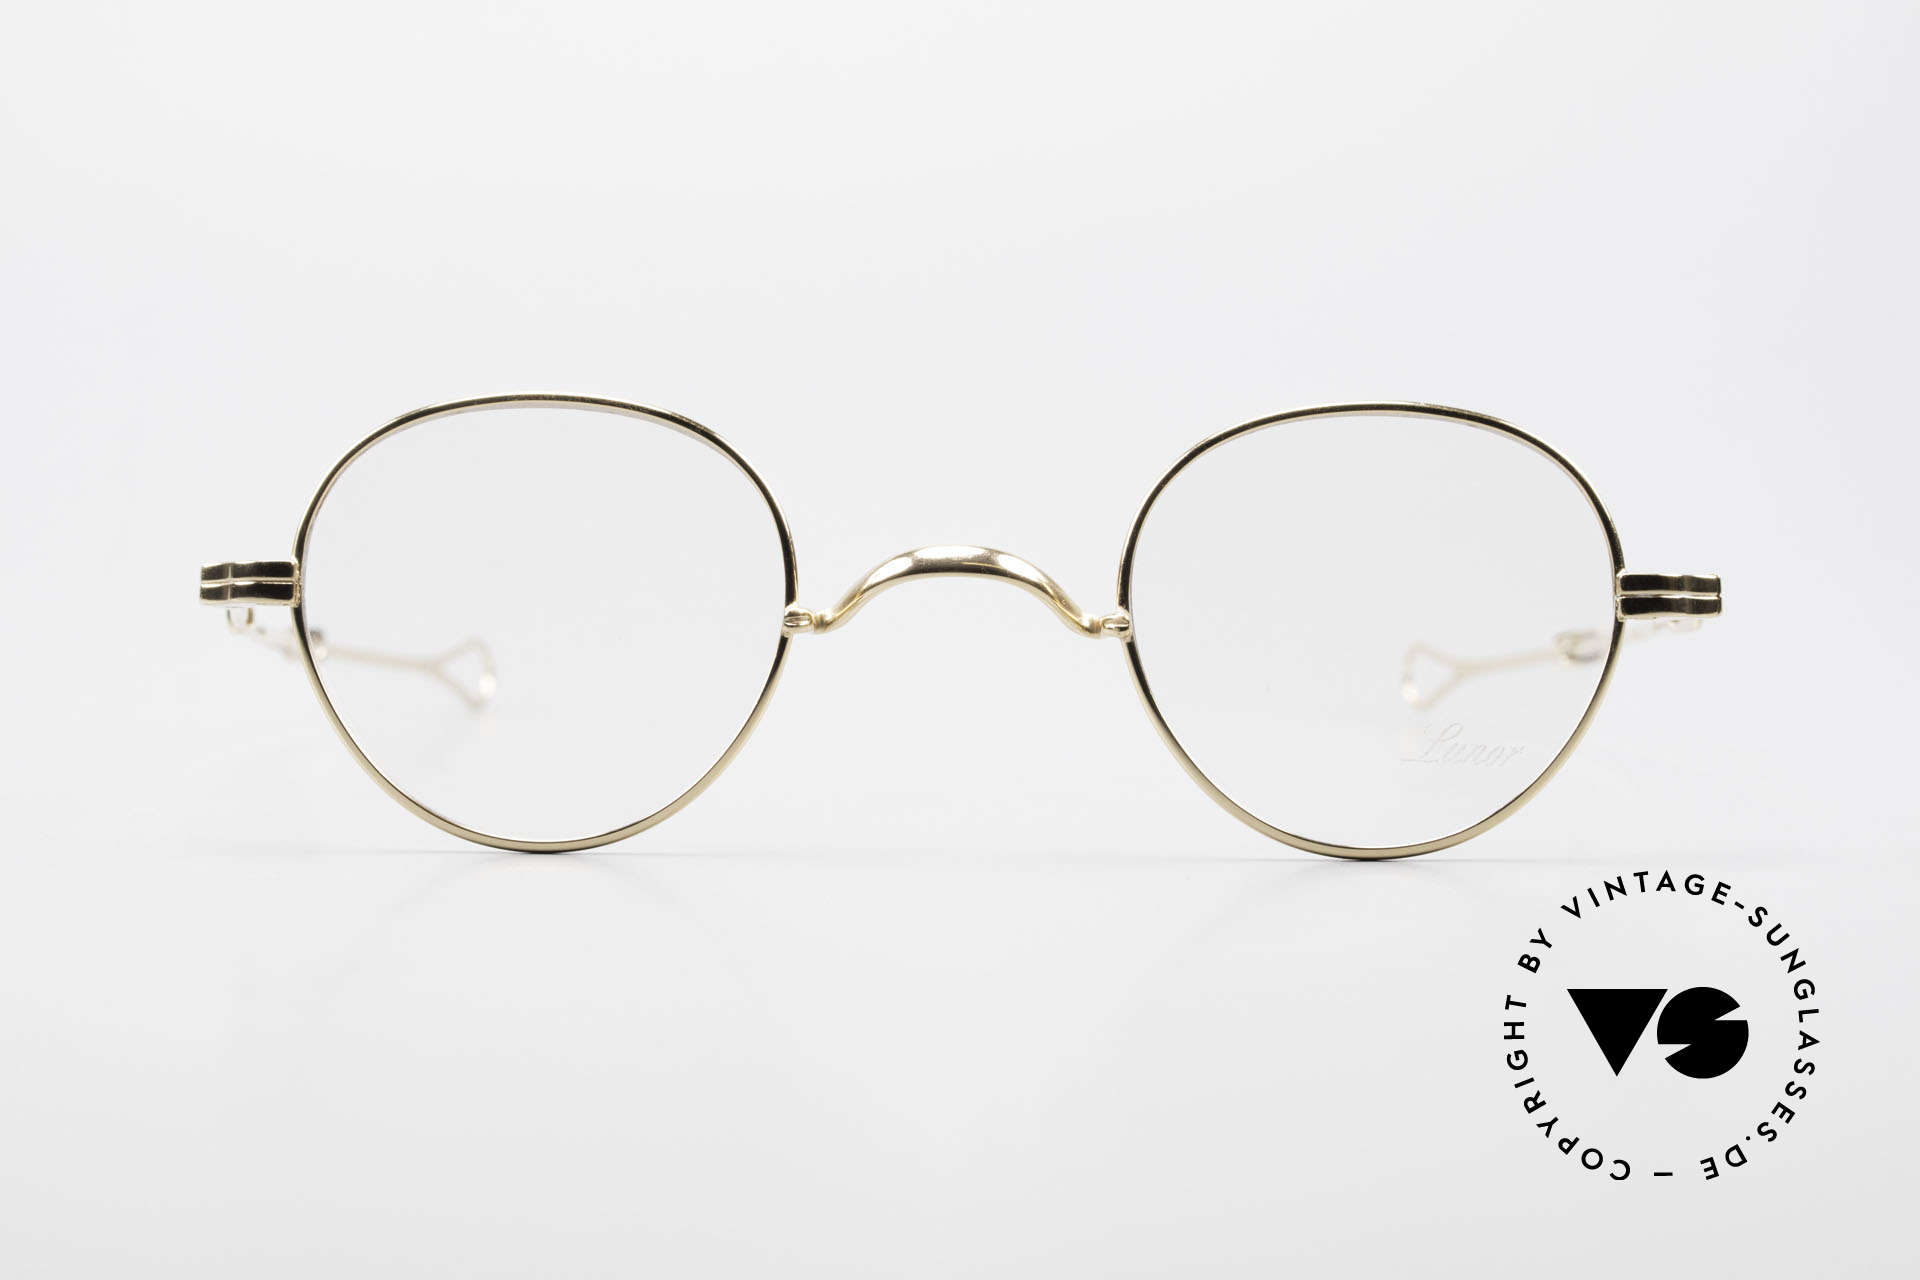 Lunor I 15 Telescopic Gold Plated Sliding Temples, traditional German brand; quality handmade in Germany, Made for Men and Women